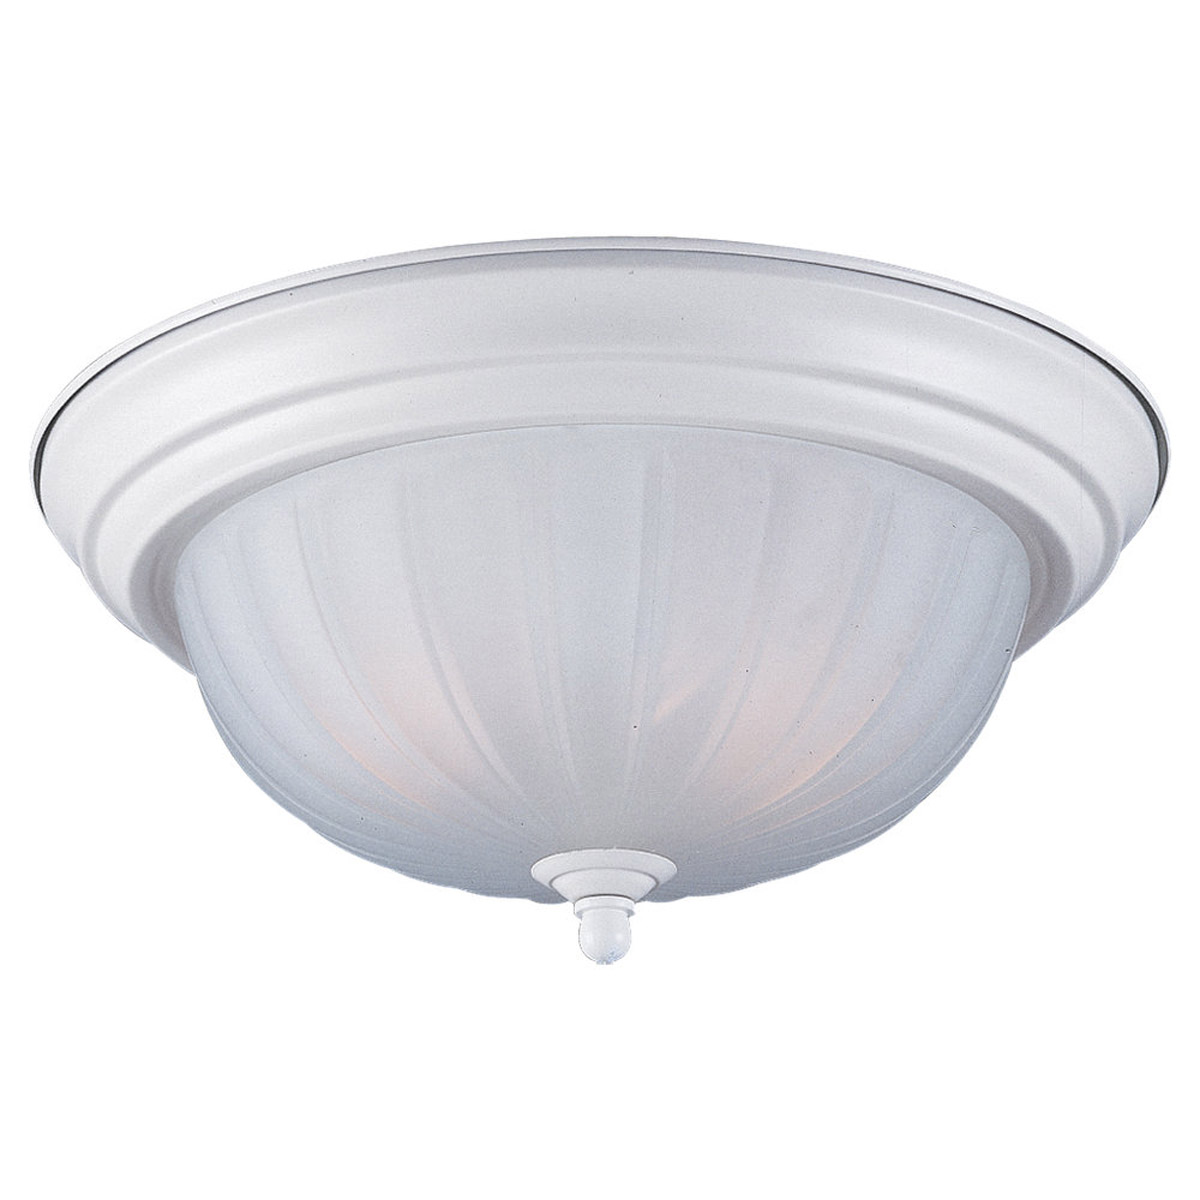 Sea Gull Lighting Floyd 1 Light Flush Mount in White 7504-15